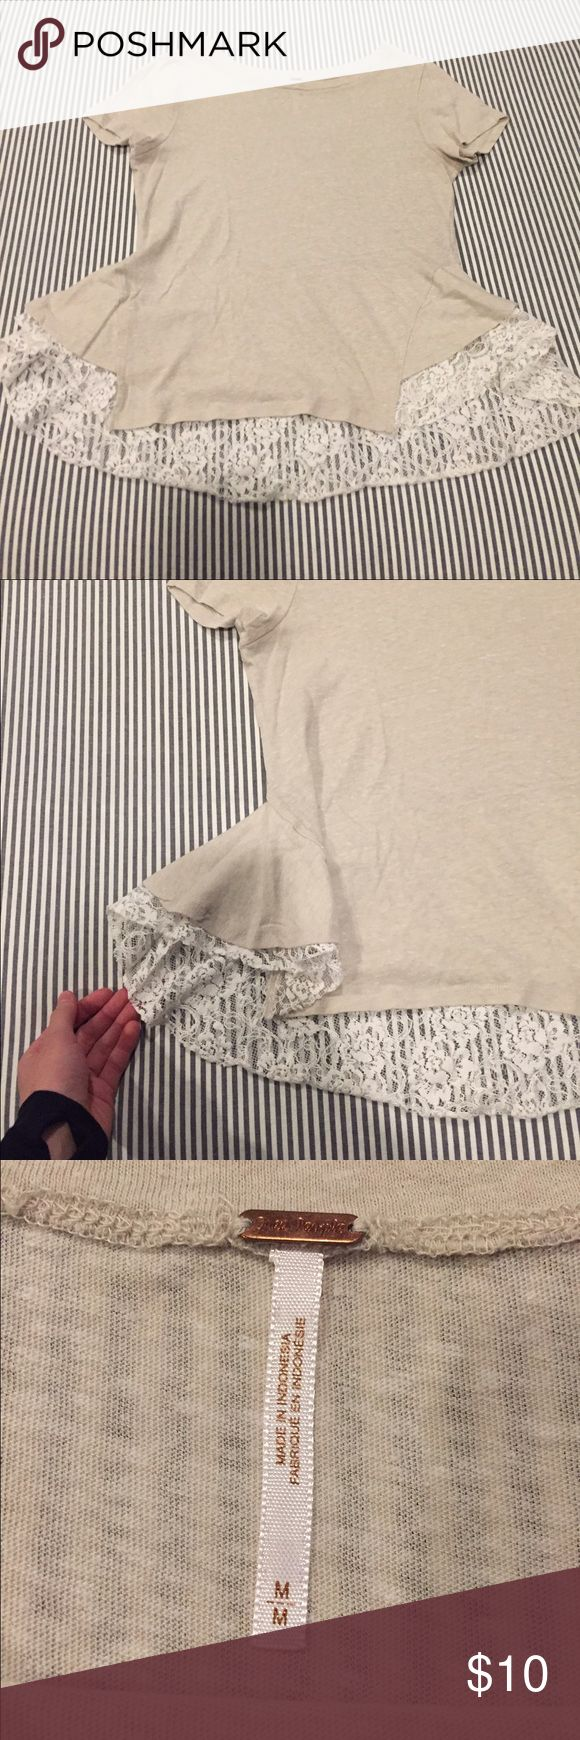 Free people lace top Free people cream lace top. Size medium. Free People Tops